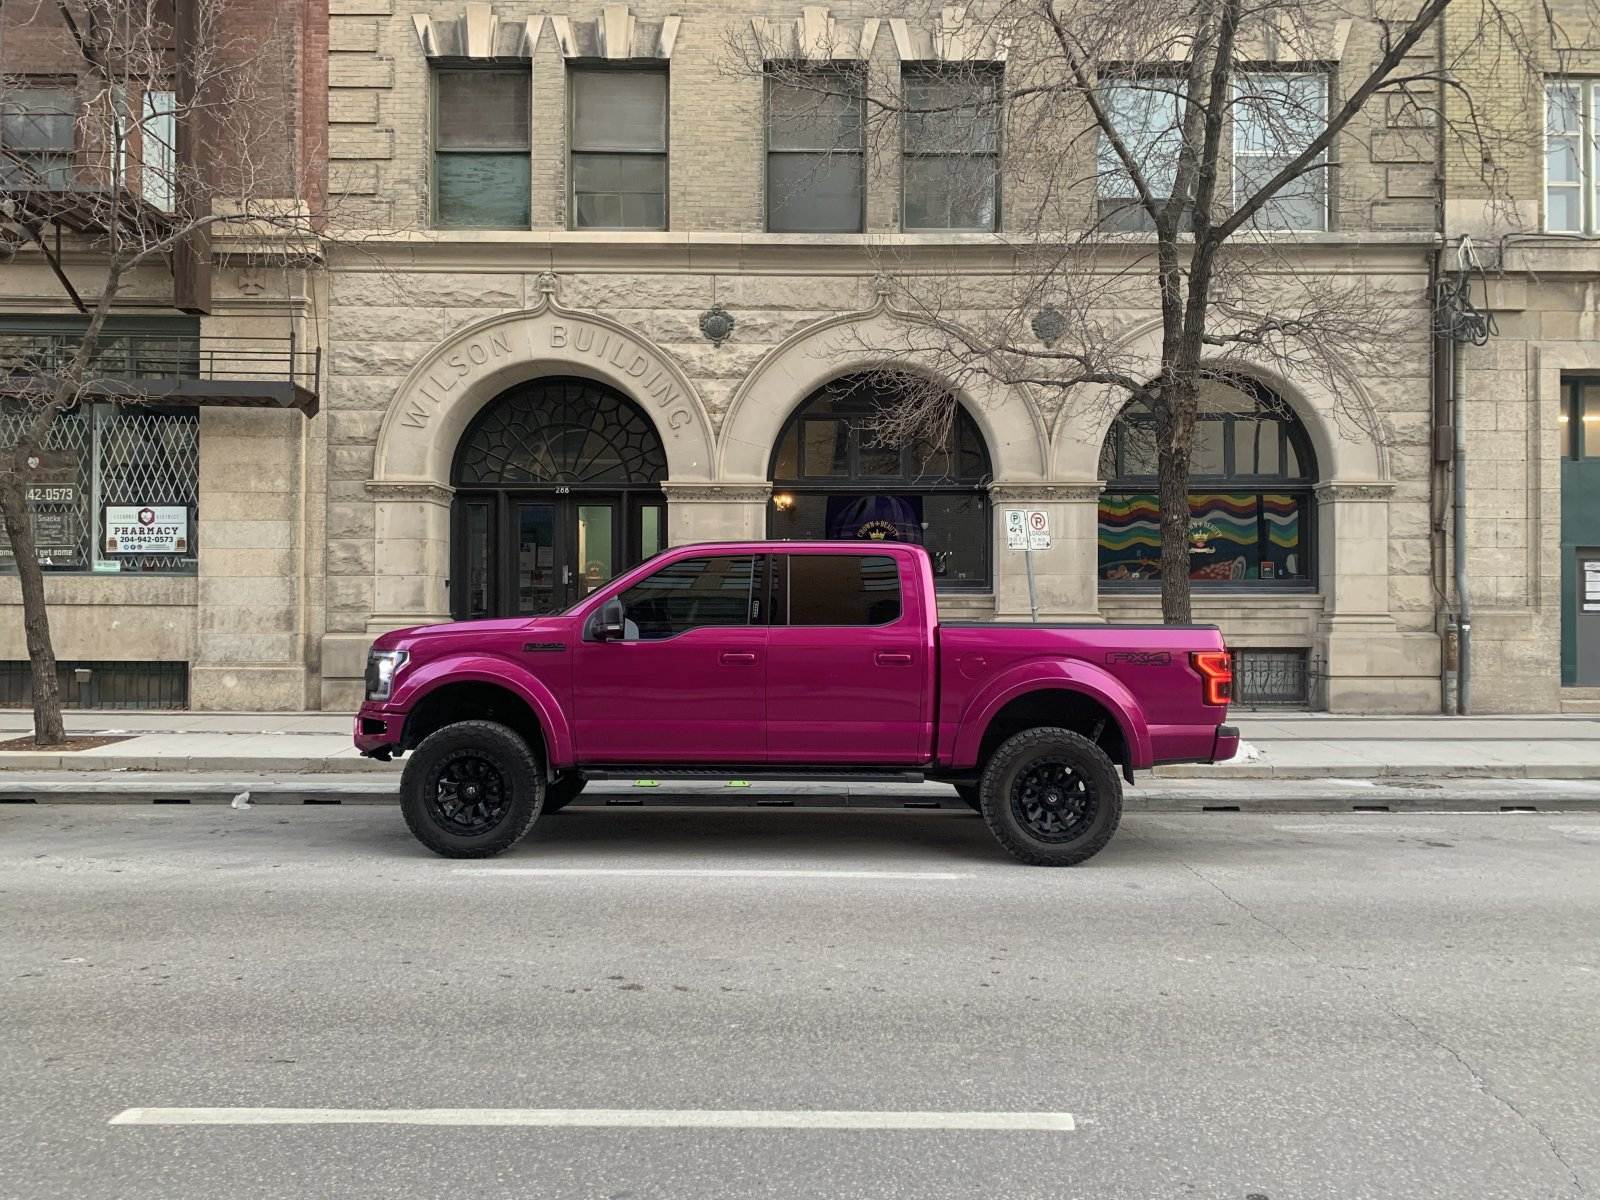 2020 Ford F-150 Lifted FX4 With Unique Color 5.jpeg